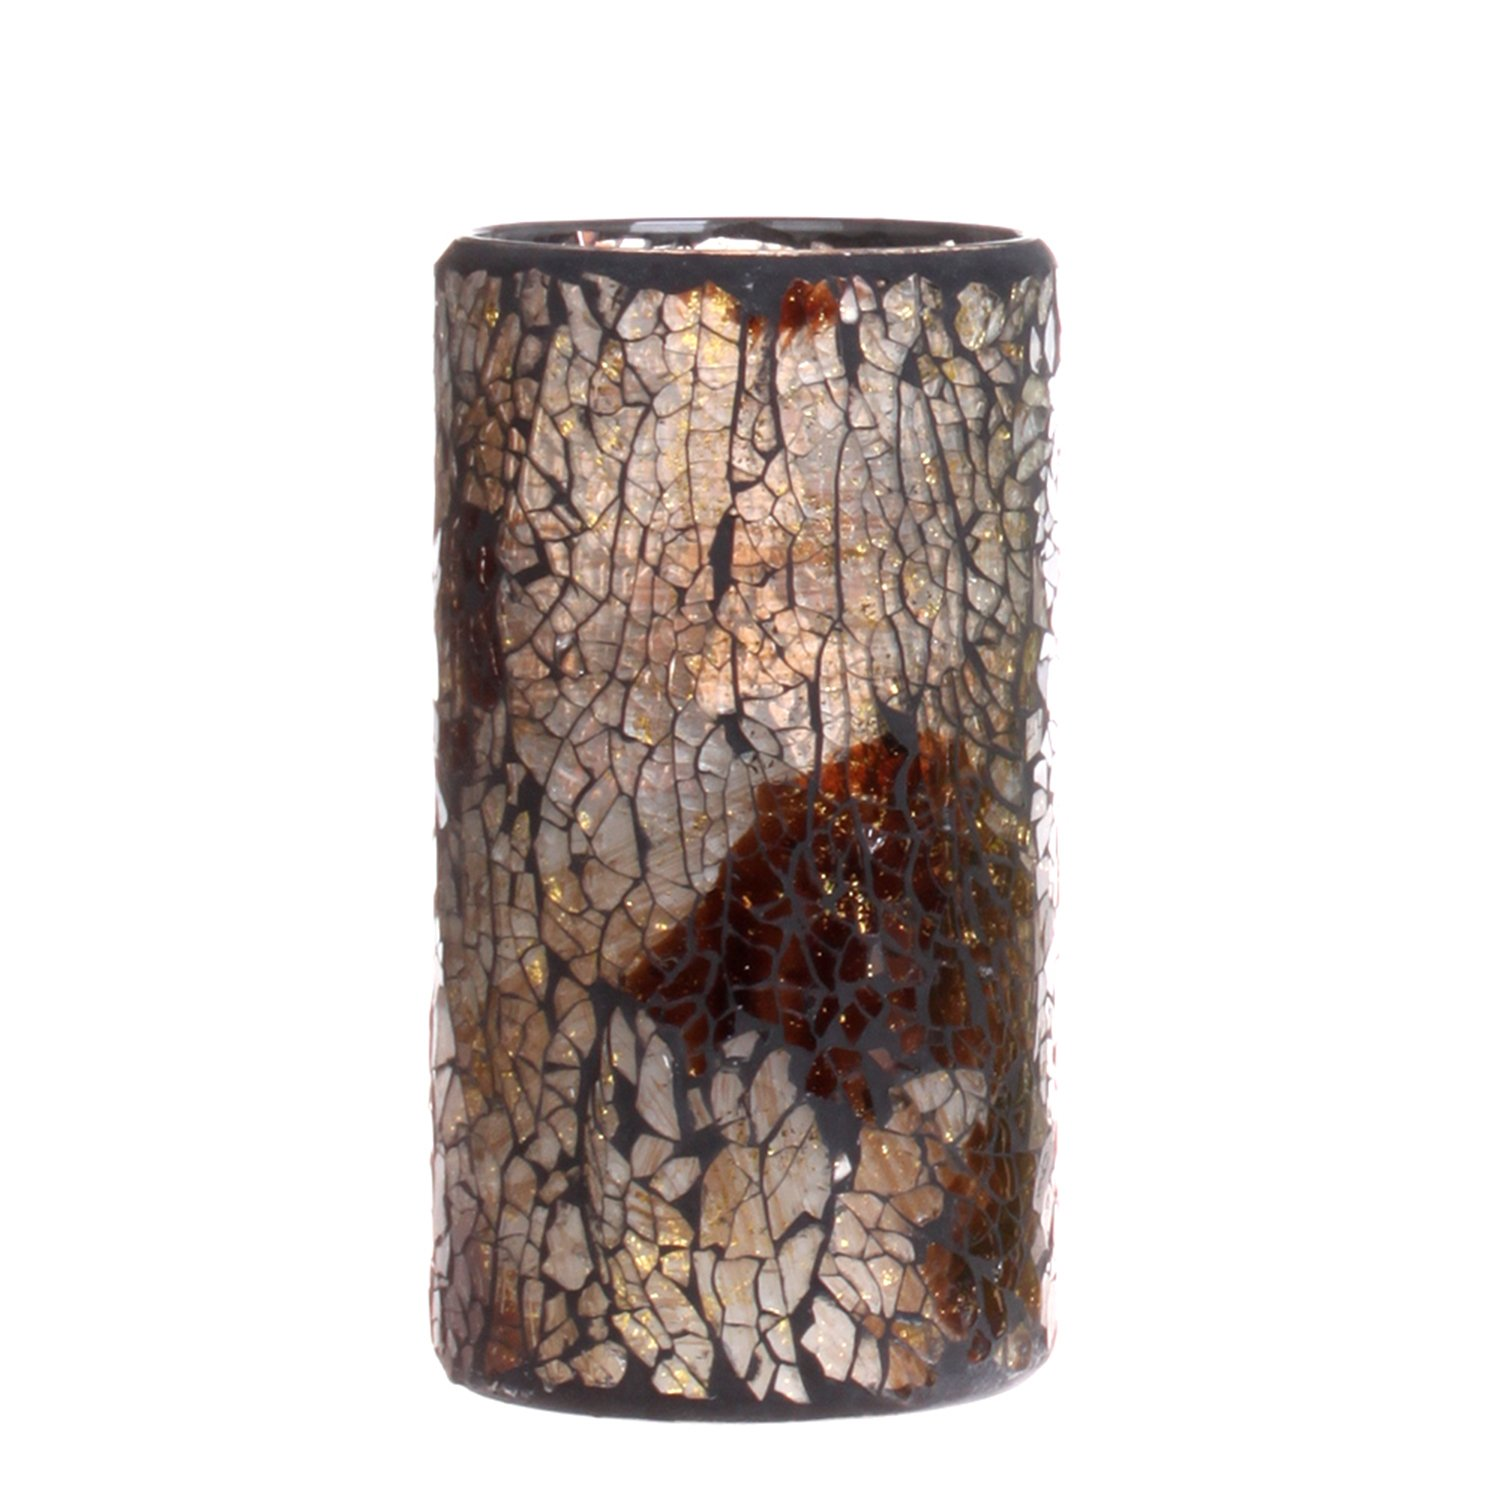 GiveU Mosaic Flameless Pillar Led Wax Candle with Timer, 3 x 6, for Home Party & Festival Celebration, Multi Brown 3 x 6 MO14038